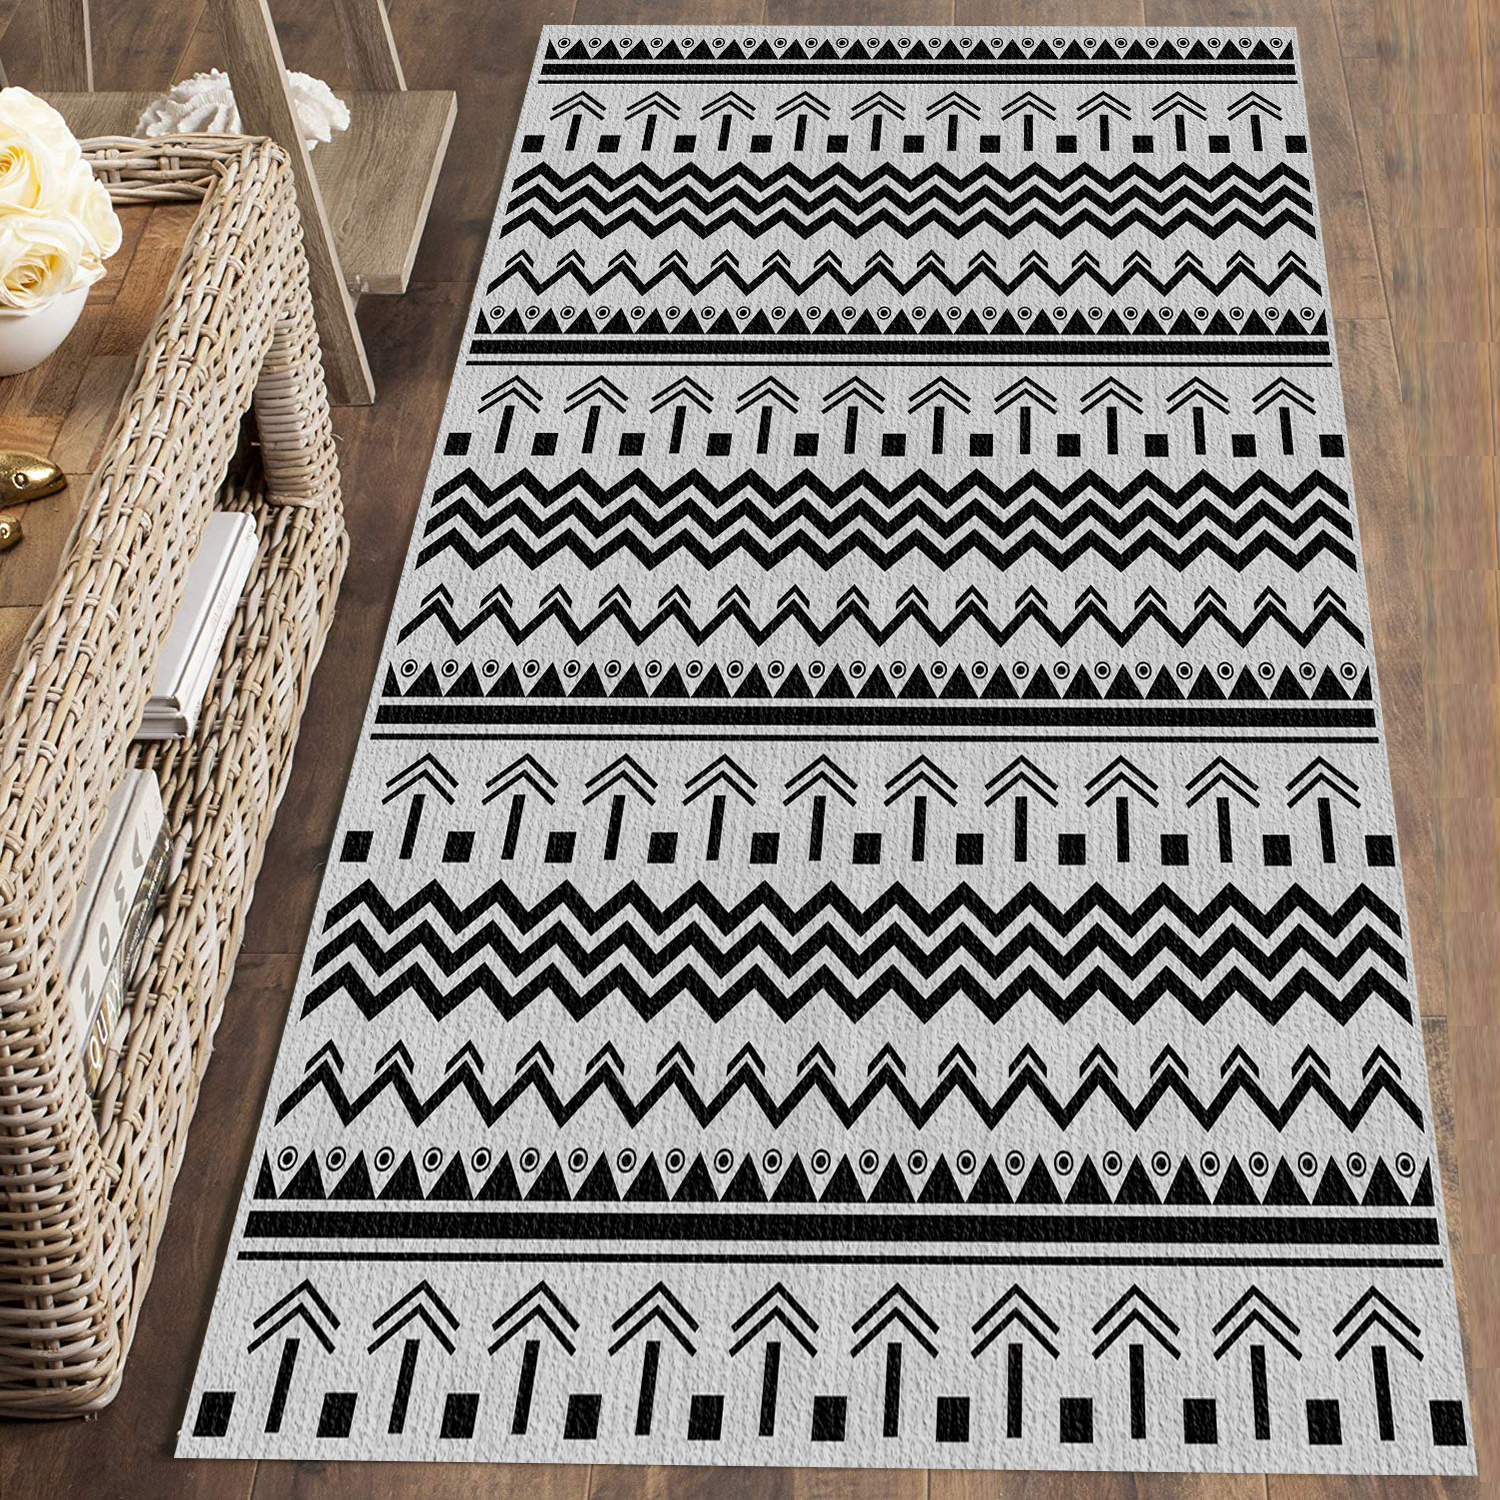 Else Gray Black Authentic Vintage Morrocan 3d Print Non Slip Microfiber Washable Runner Mats Floor Mat Rugs Hallway Carpets